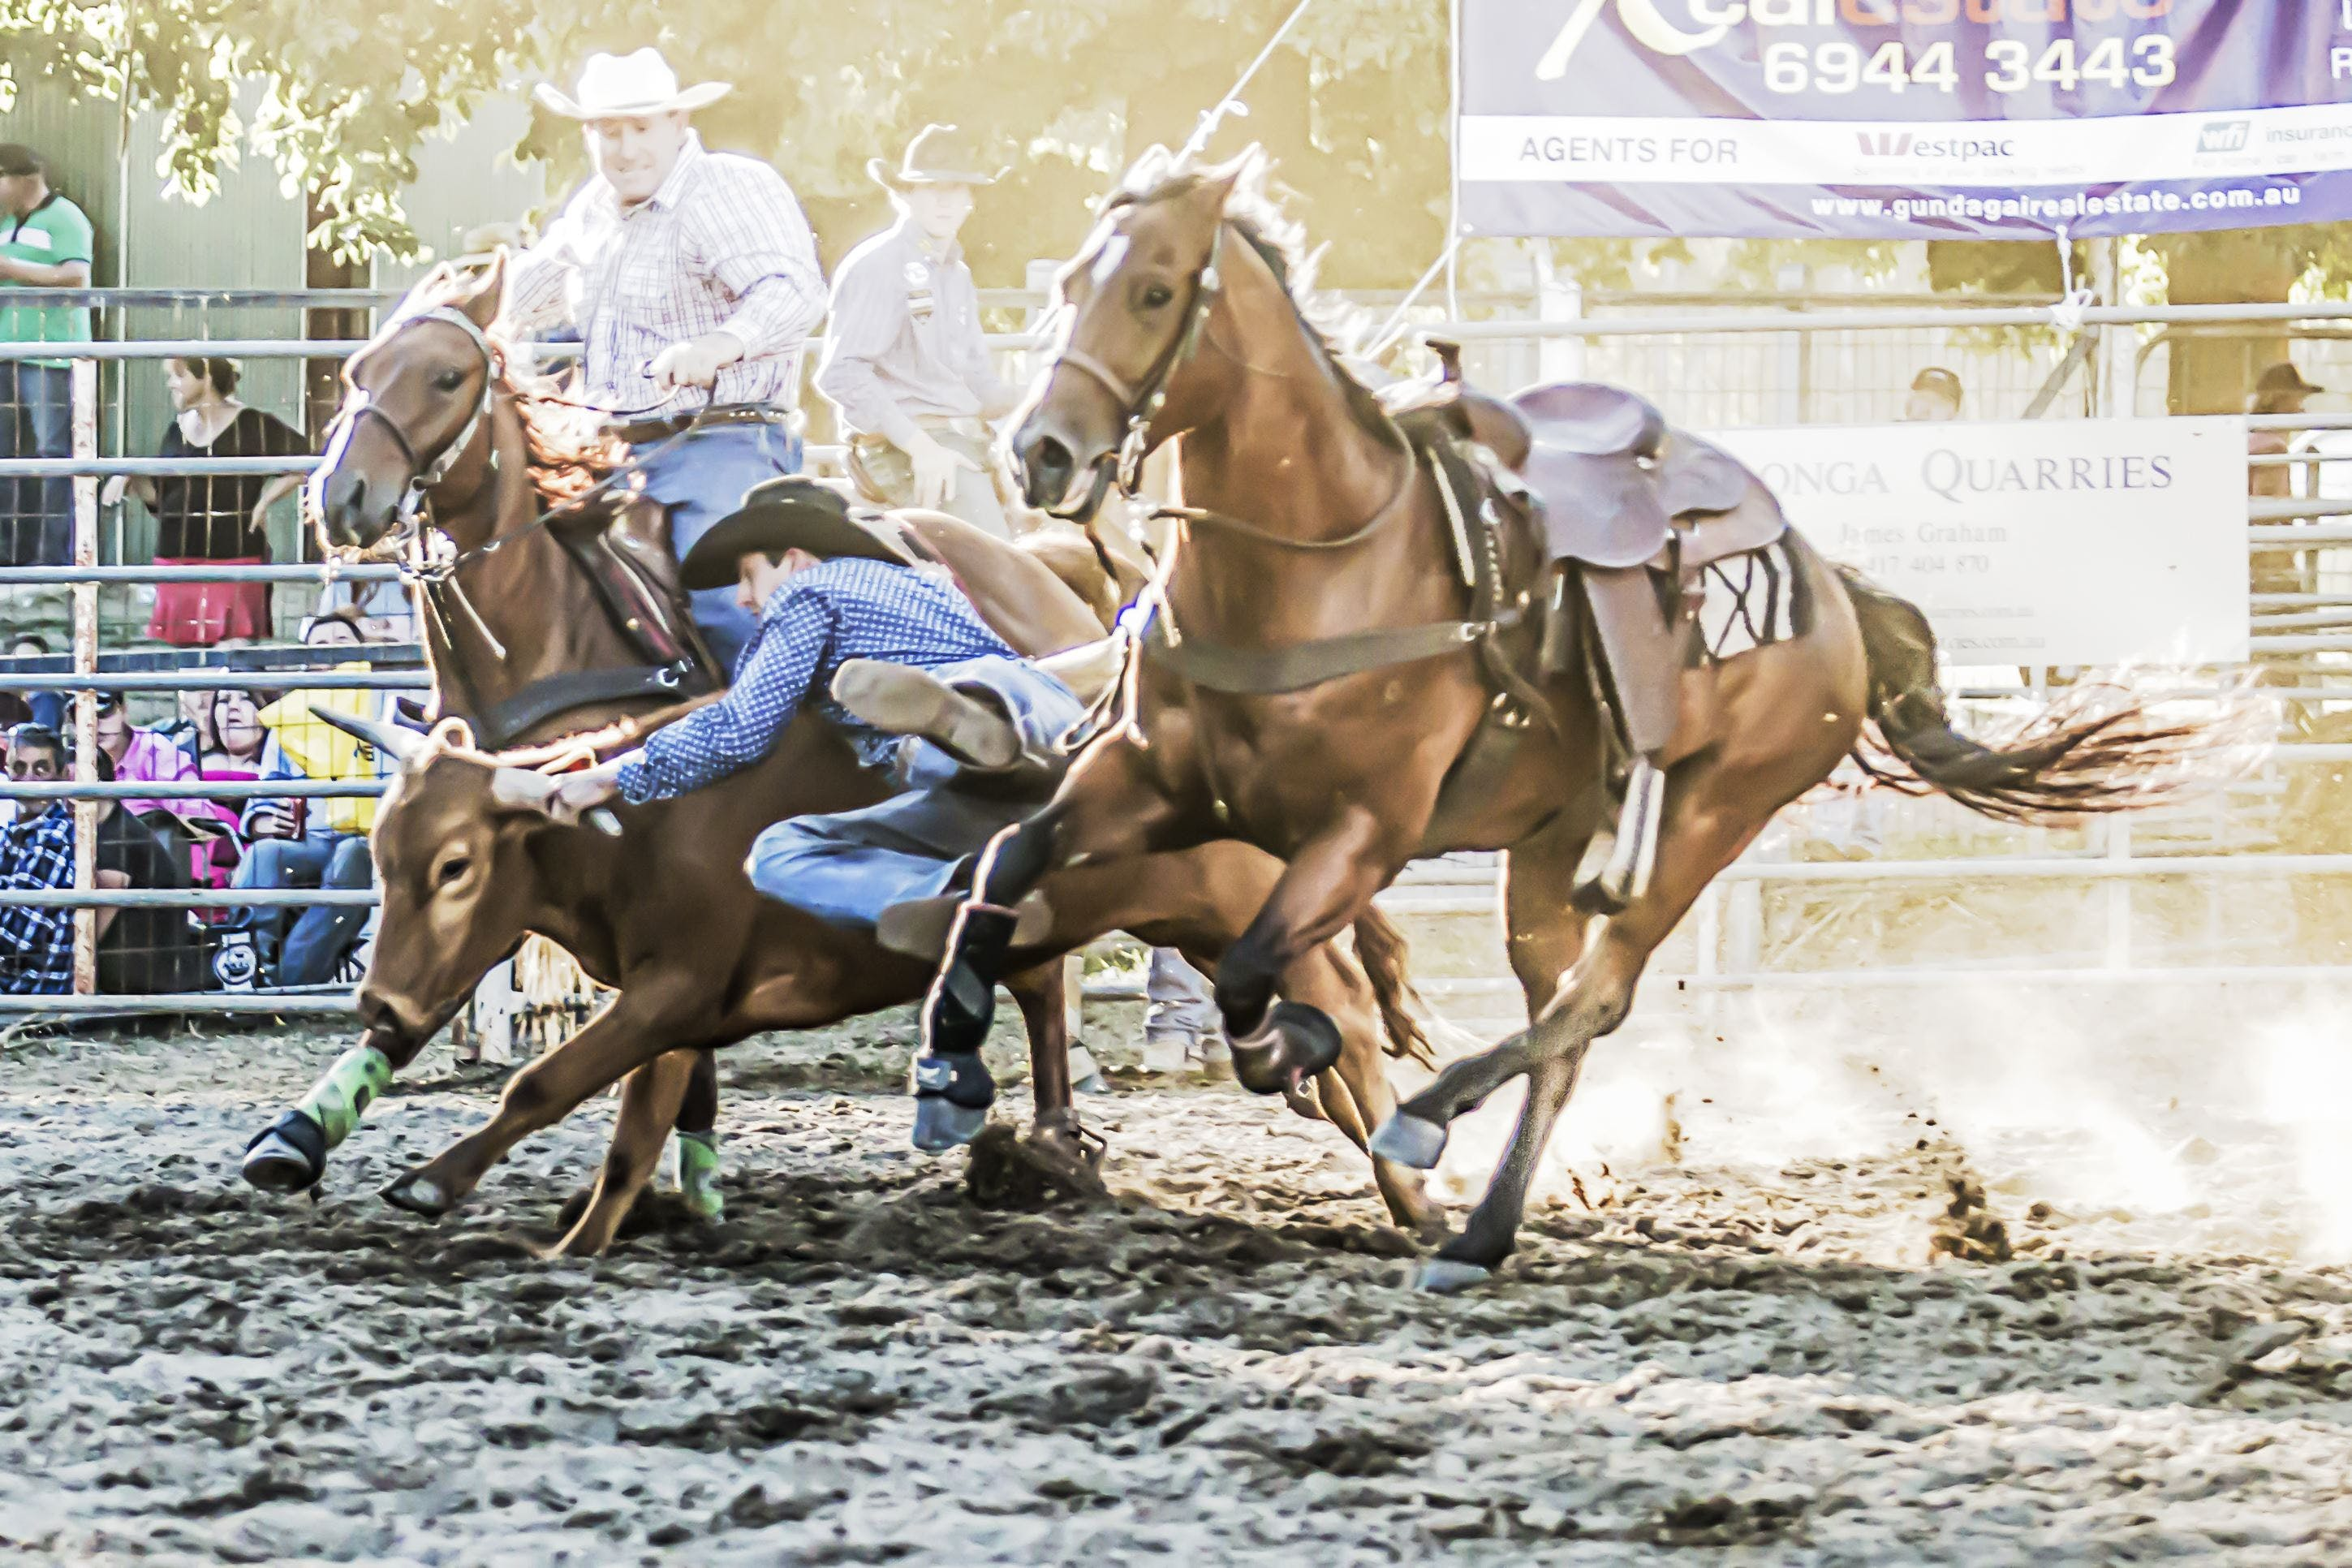 Gundagai Rodeo - New South Wales Tourism